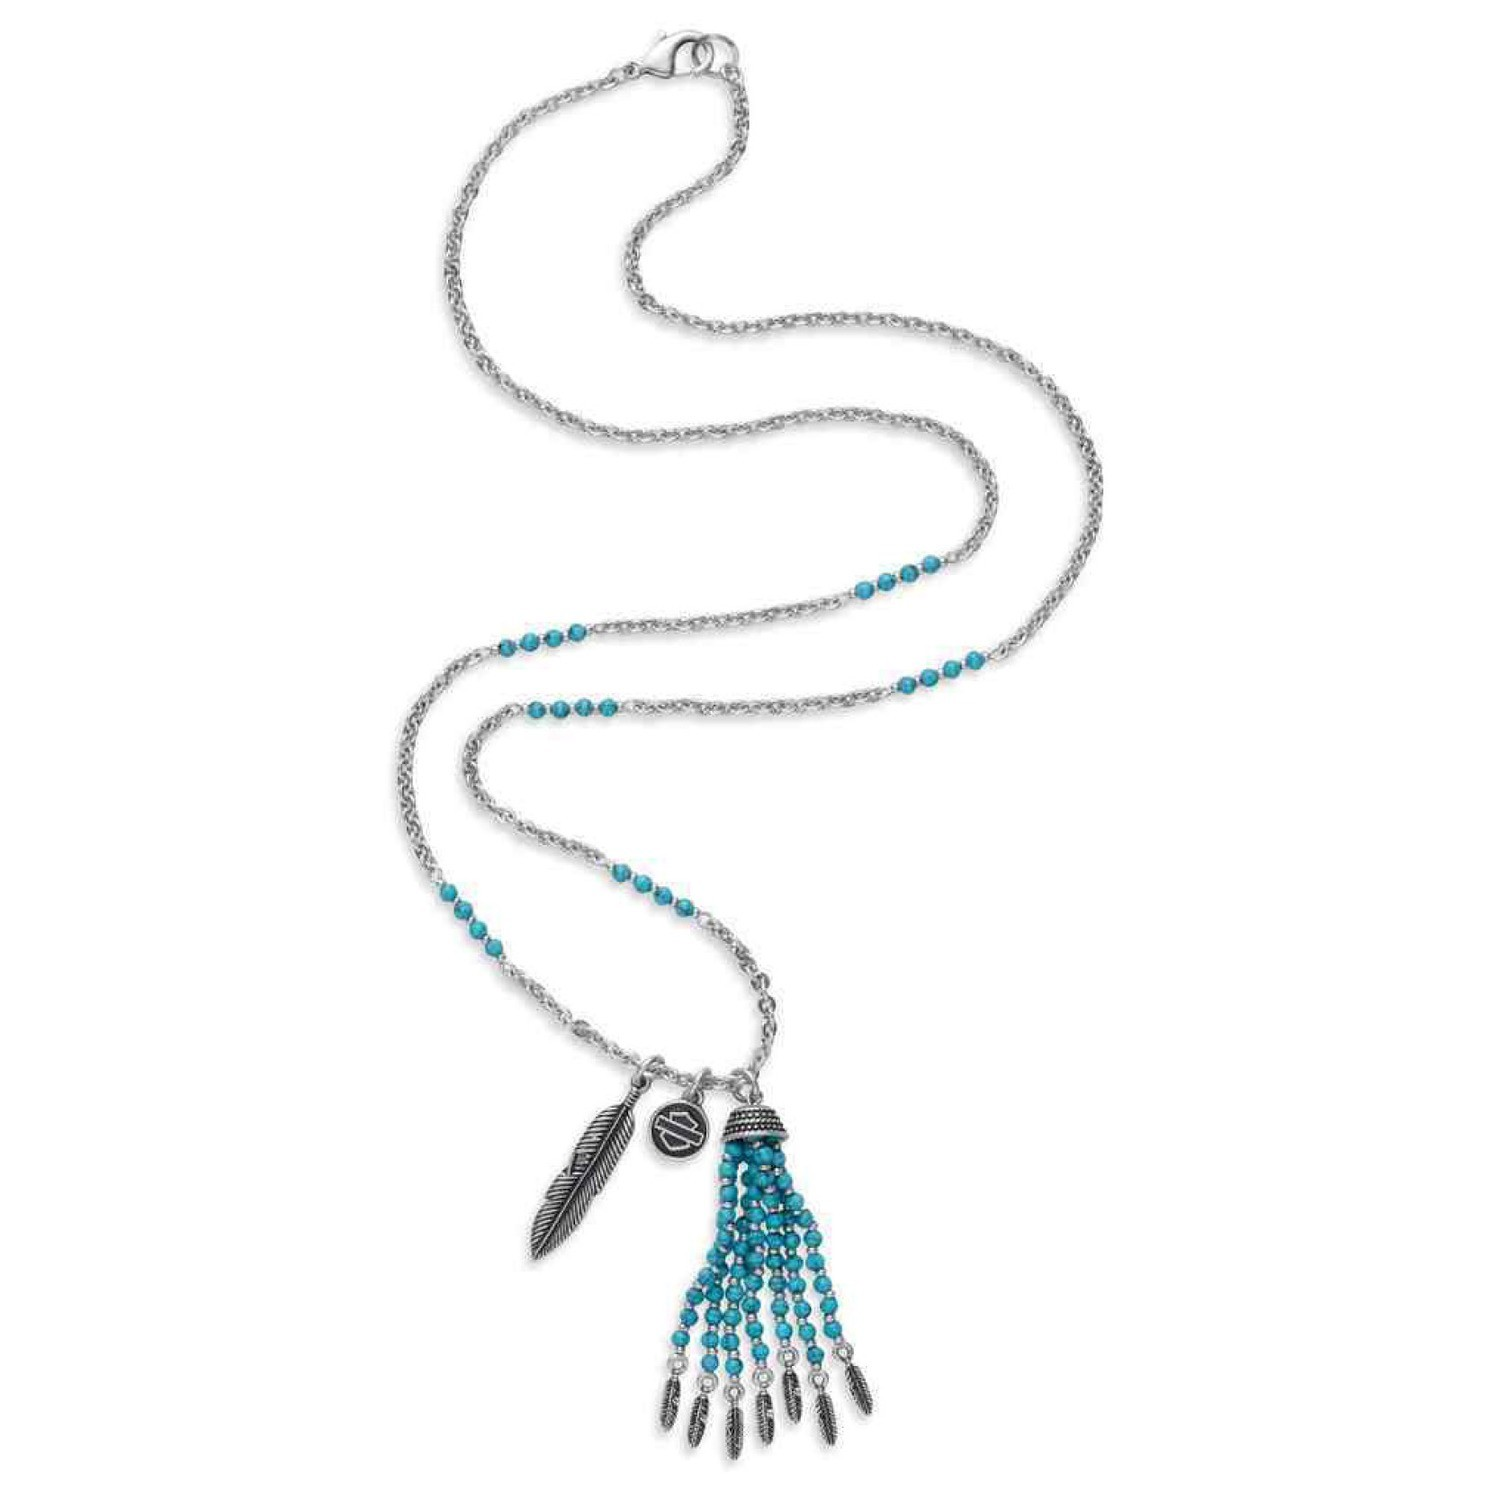 Necklace Women Free Spirit Turquoise Bead & Charm